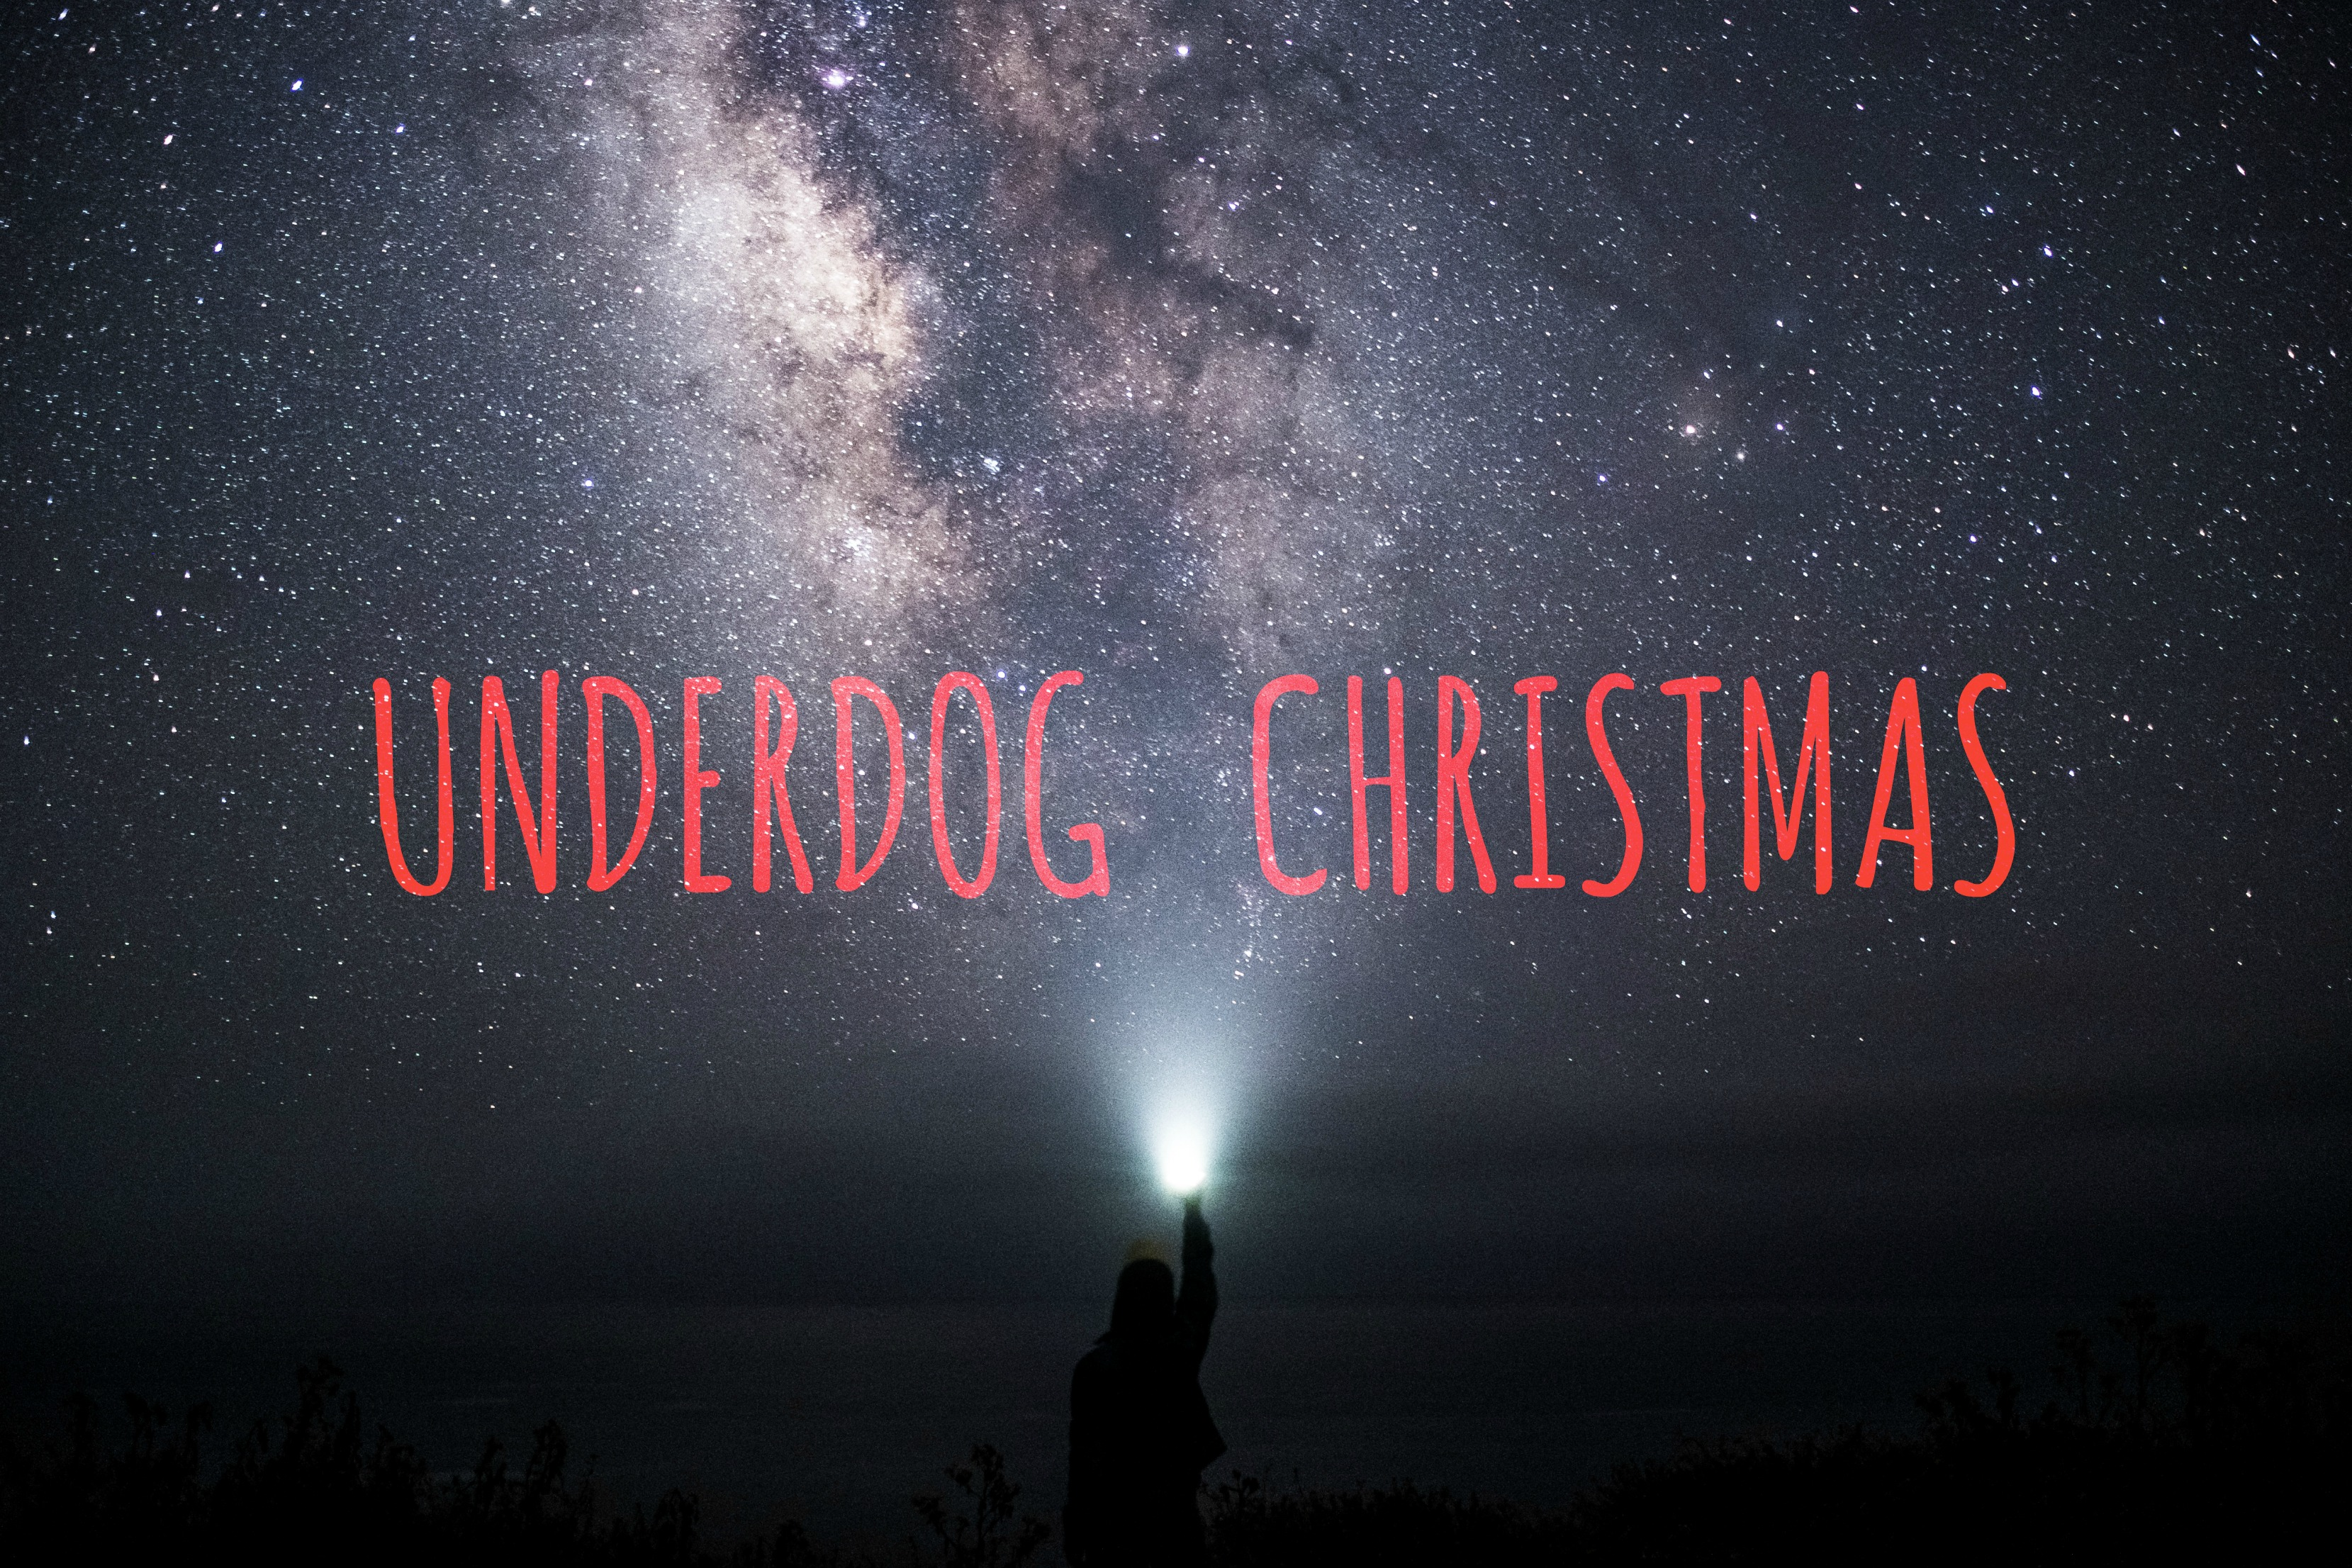 Underdog-Christmas-Red-Text